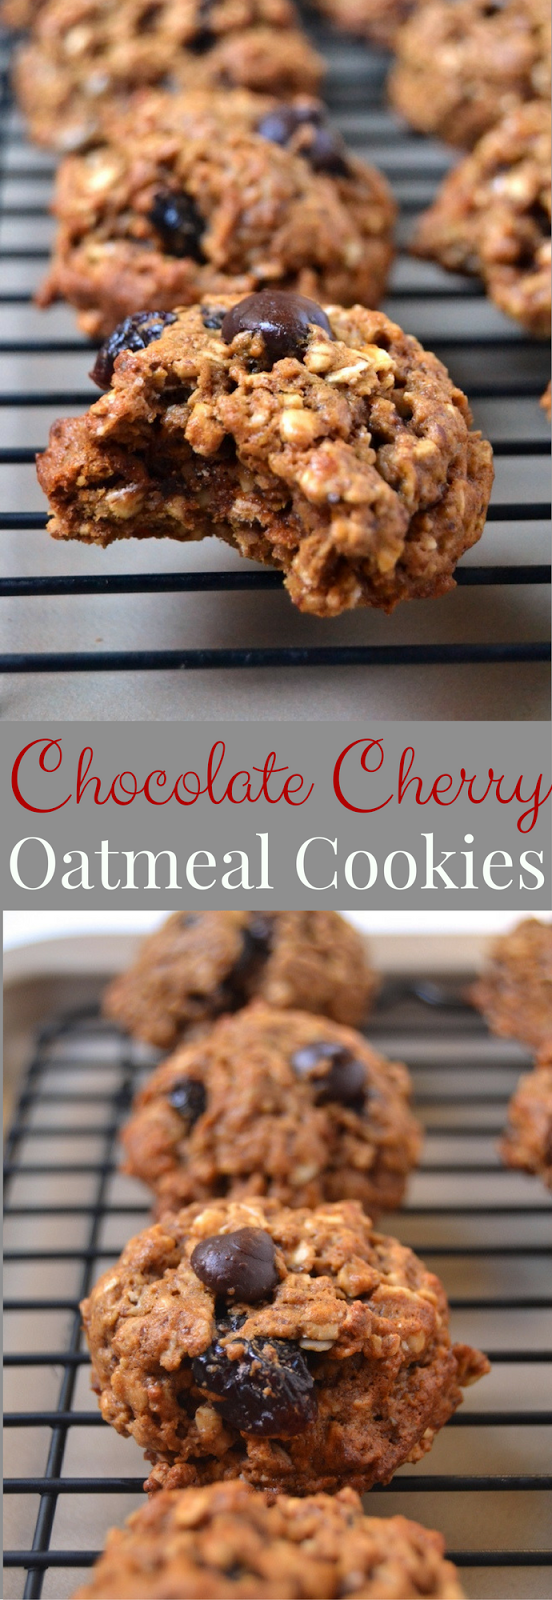 Chocolate Cherry Oatmeal Cookies are made healthier with oats, whole-wheat flour and flax. They are a perfect sweet treat with dried cherries and dark chocolate chips that are soft, slightly chewy and have crisp edges. www.nutritionistreviews.com